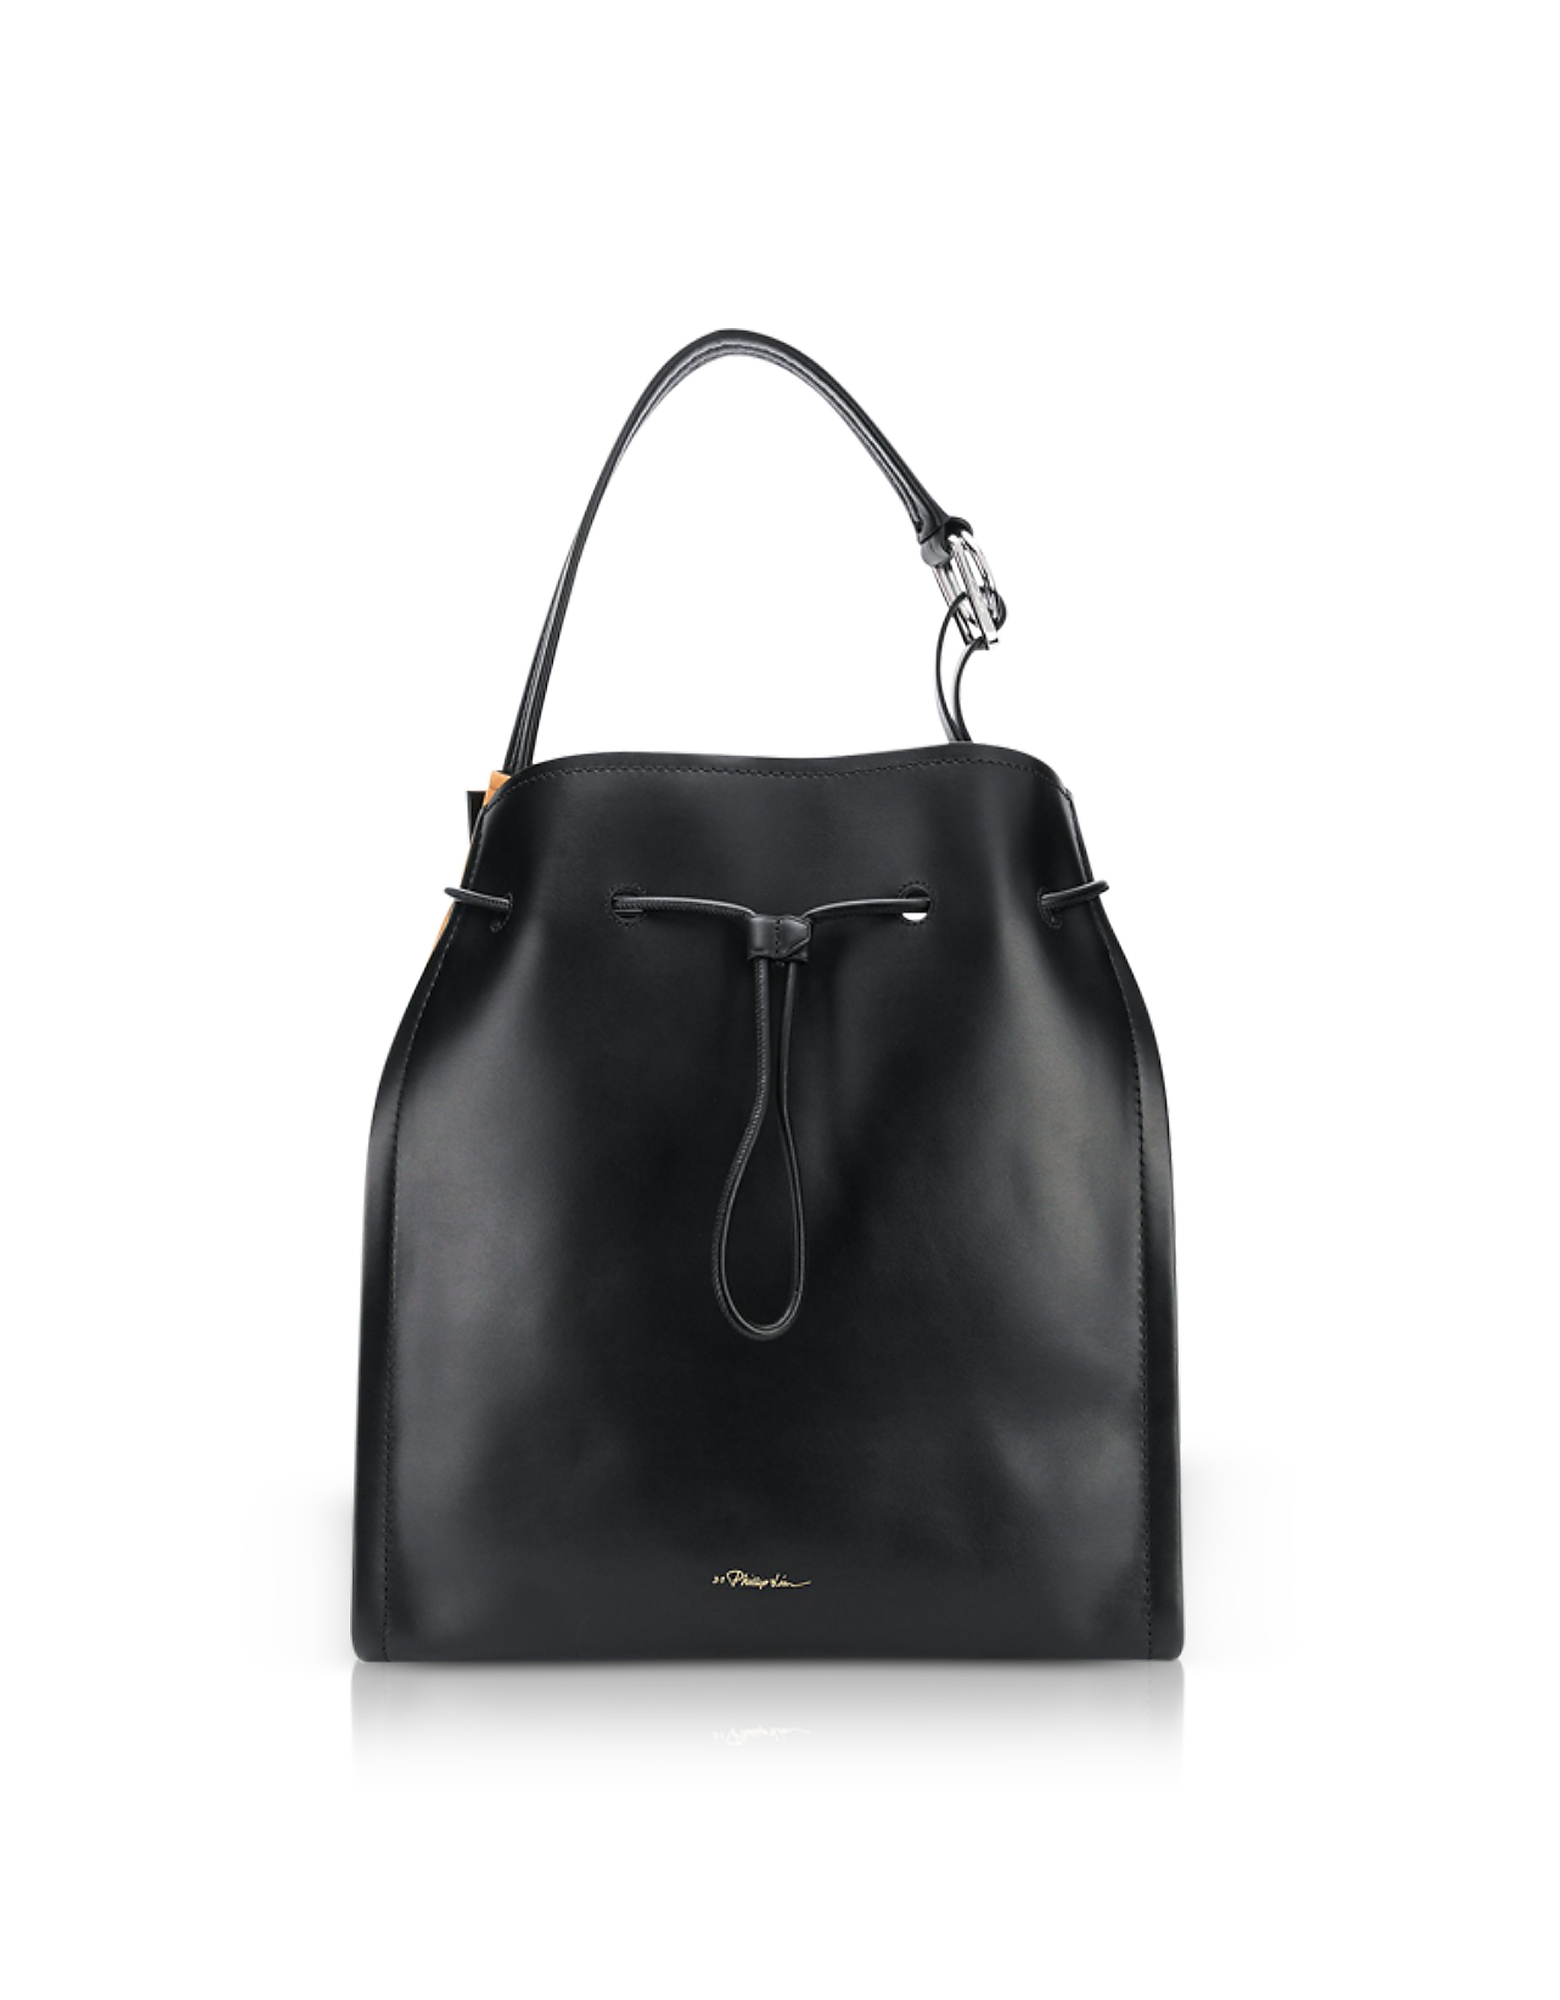 Image of 3.1 Phillip Lim Designer Handbags, Black Leather and Cinnamon Suede Hudson Market